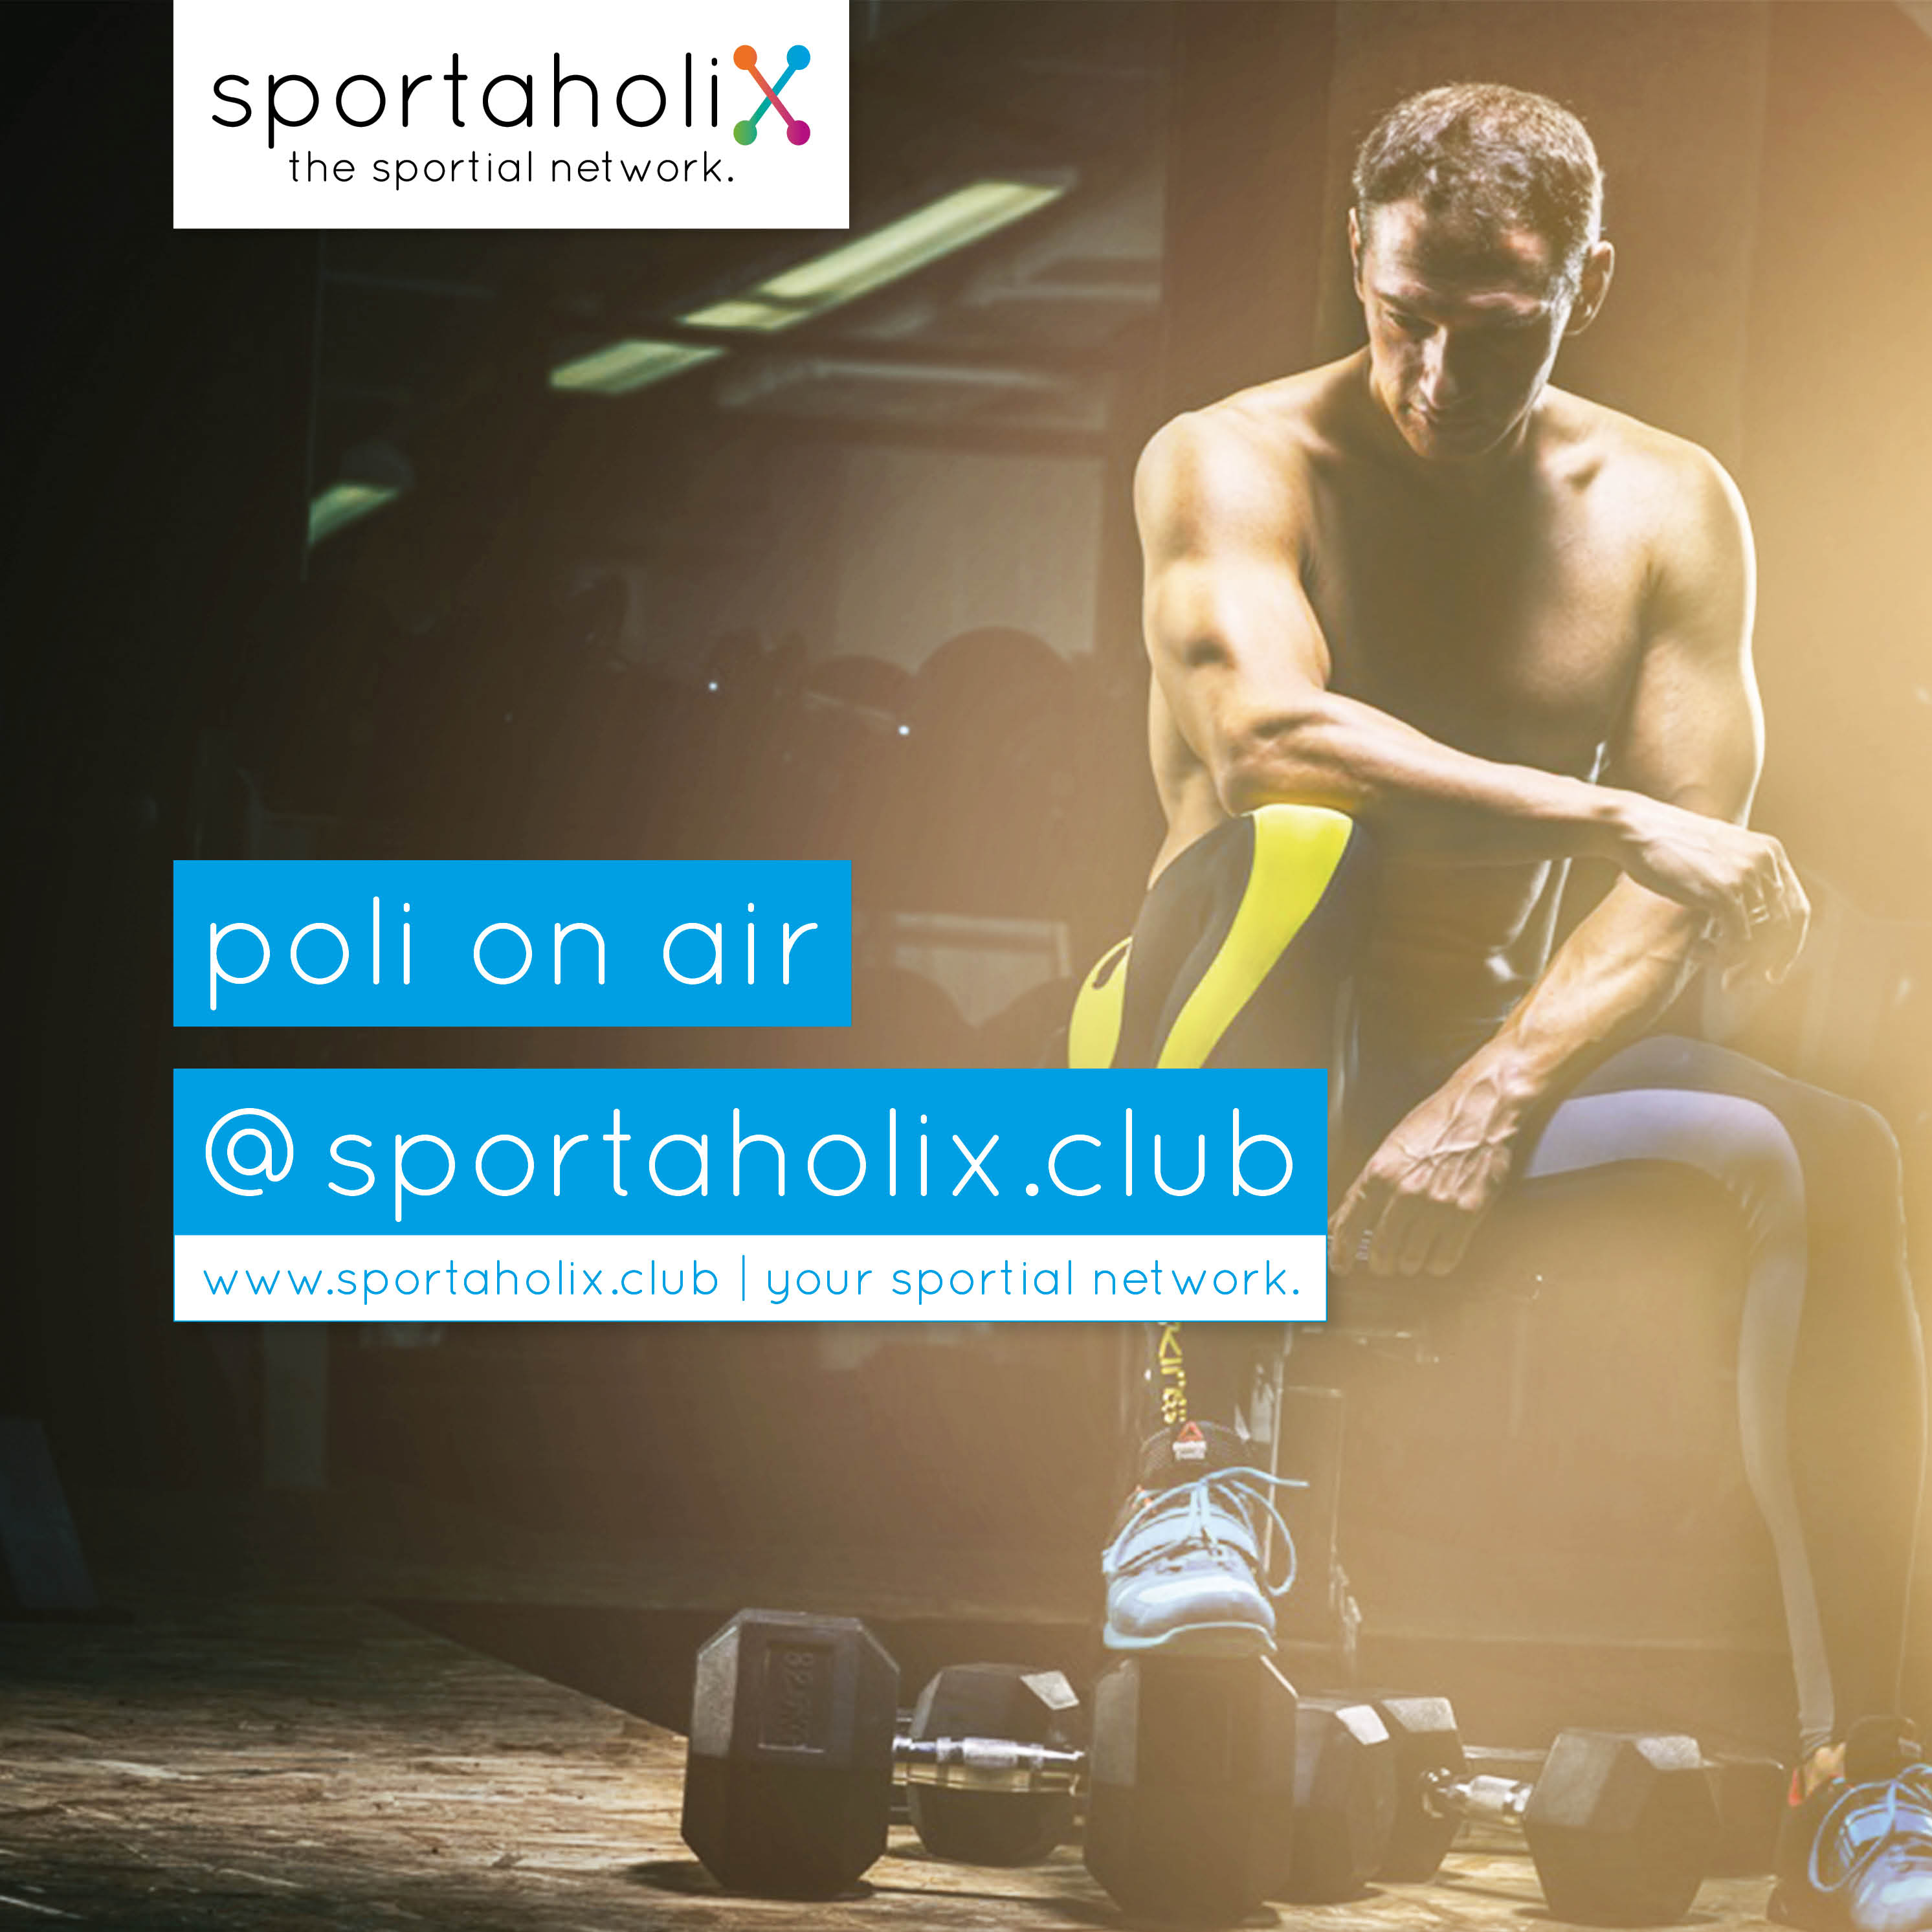 poli on air @ sportaholix.club - Der Business-Podcast für alle Fitness-Professionals - FITNESS I BUSINESS I ERFOLG